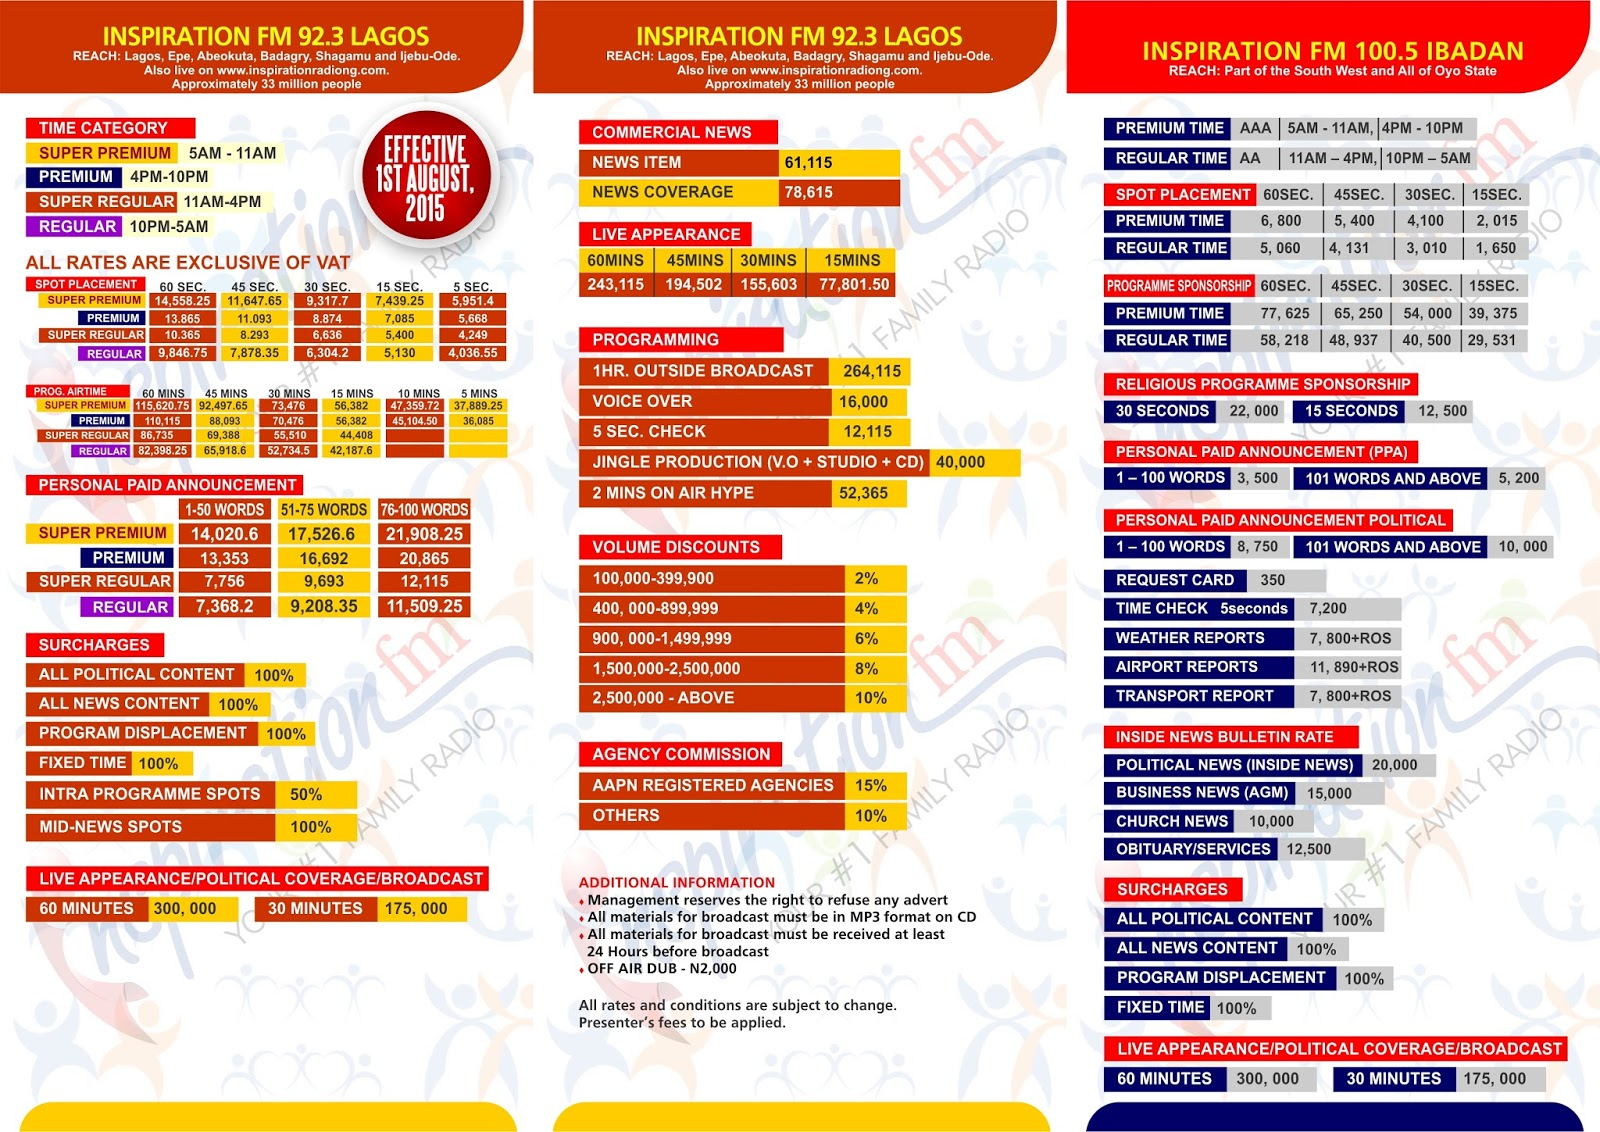 Romjiks Media Consultants: Metro FM and Inspiration FM New Rate Card.